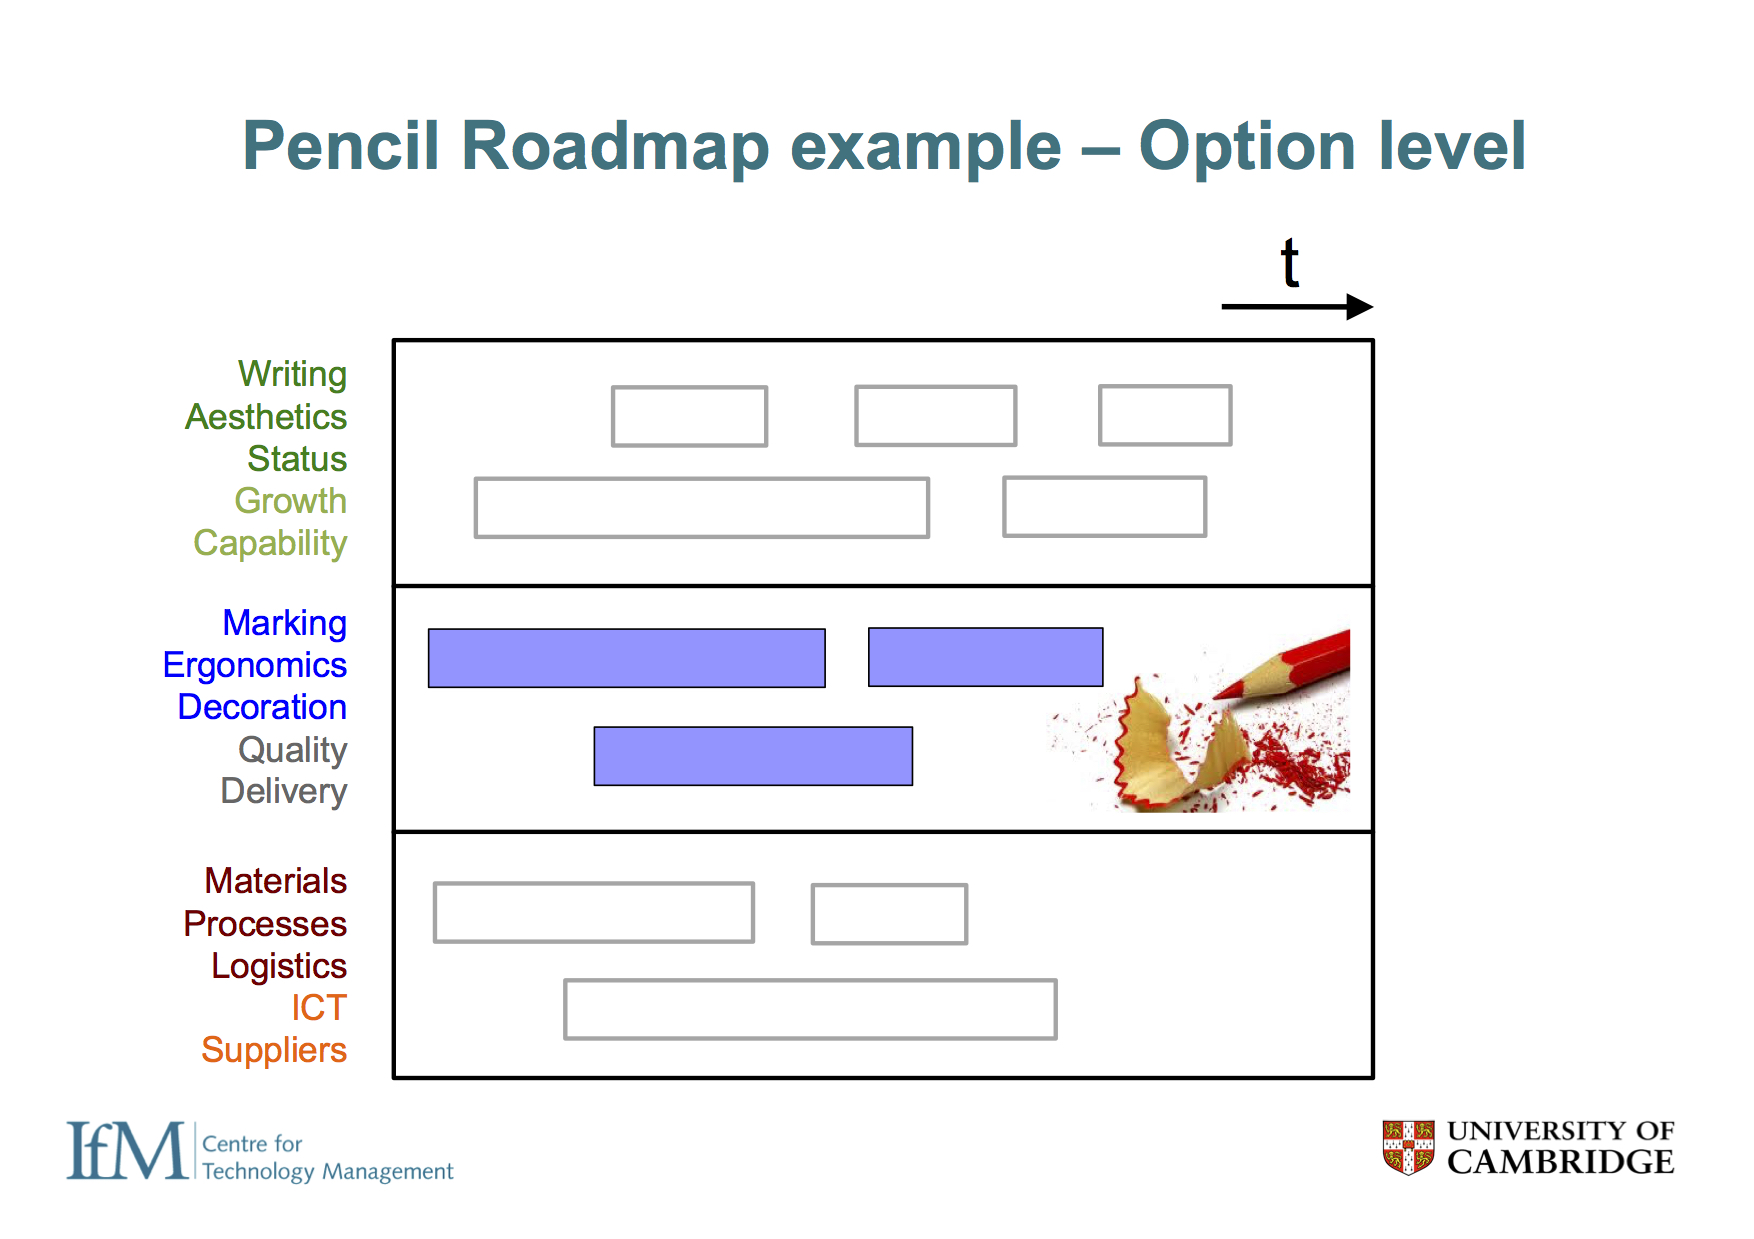 In terms of the roadmap, the same structure is used for this and the core associated linking grids, shown here at the option level (for the pencil), which would allow the strategy for the pencil to be laid out, with separate roadmaps for other products, such as pens and styluses.